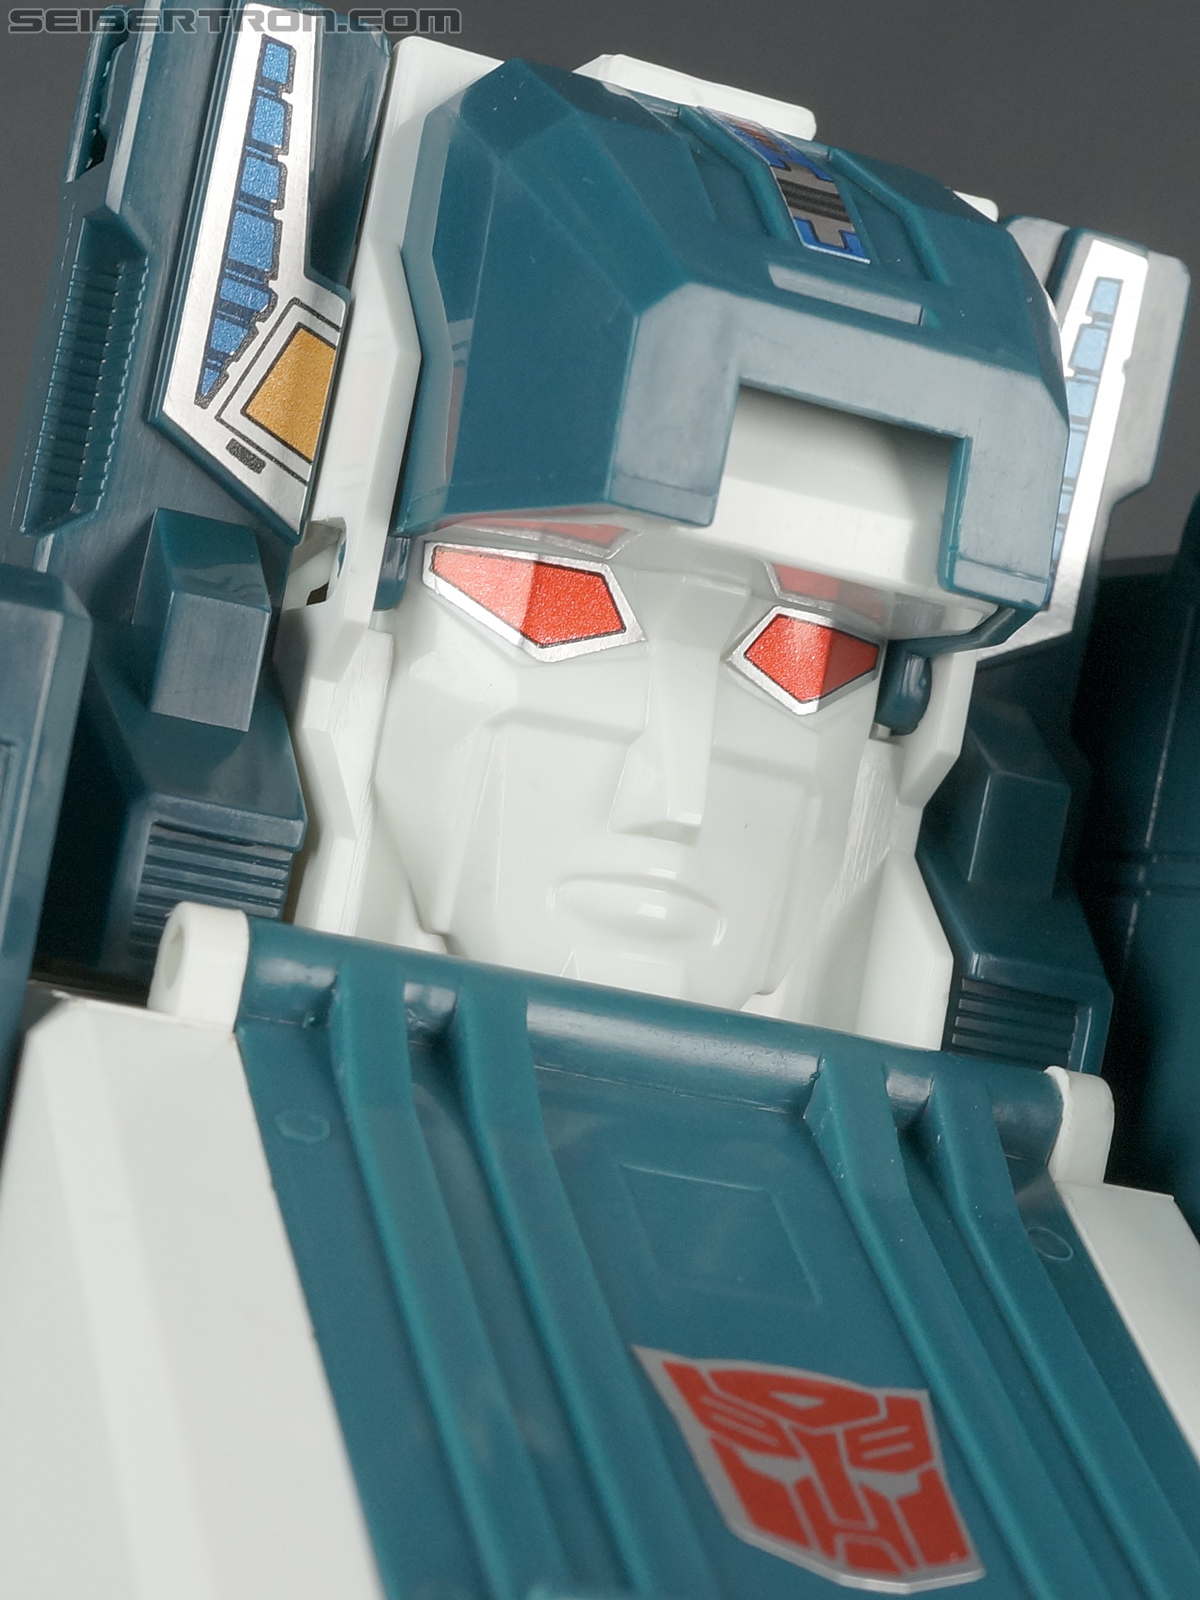 Transformers Super God Masterforce Grand Maximus (Image #241 of 335)